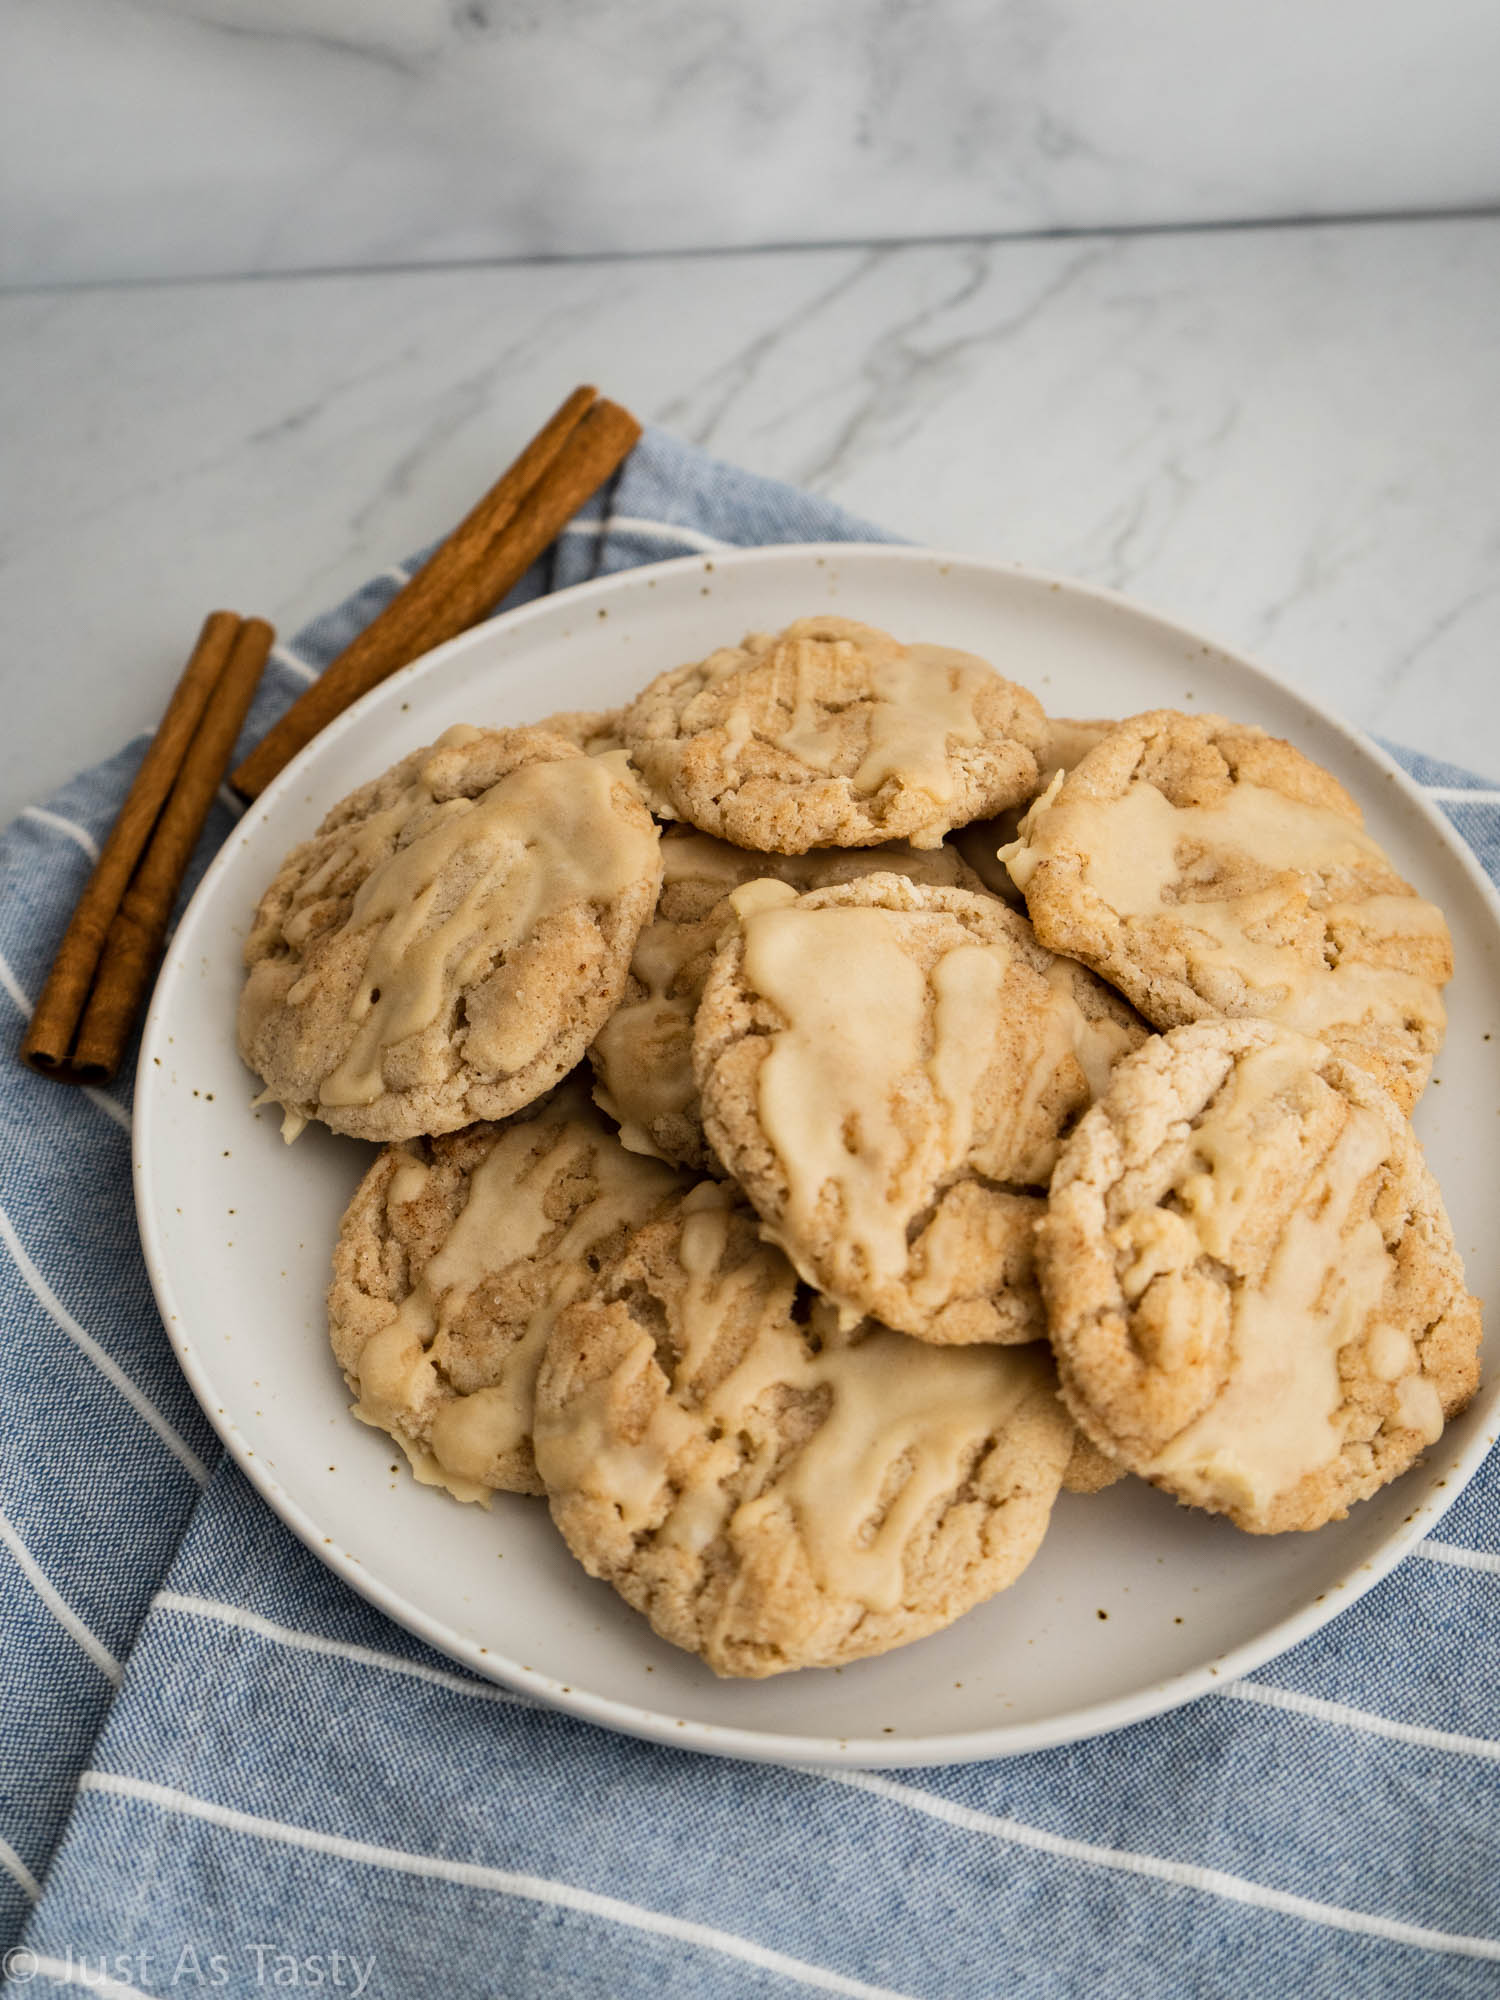 Maple snickerdoodles on a white plate.